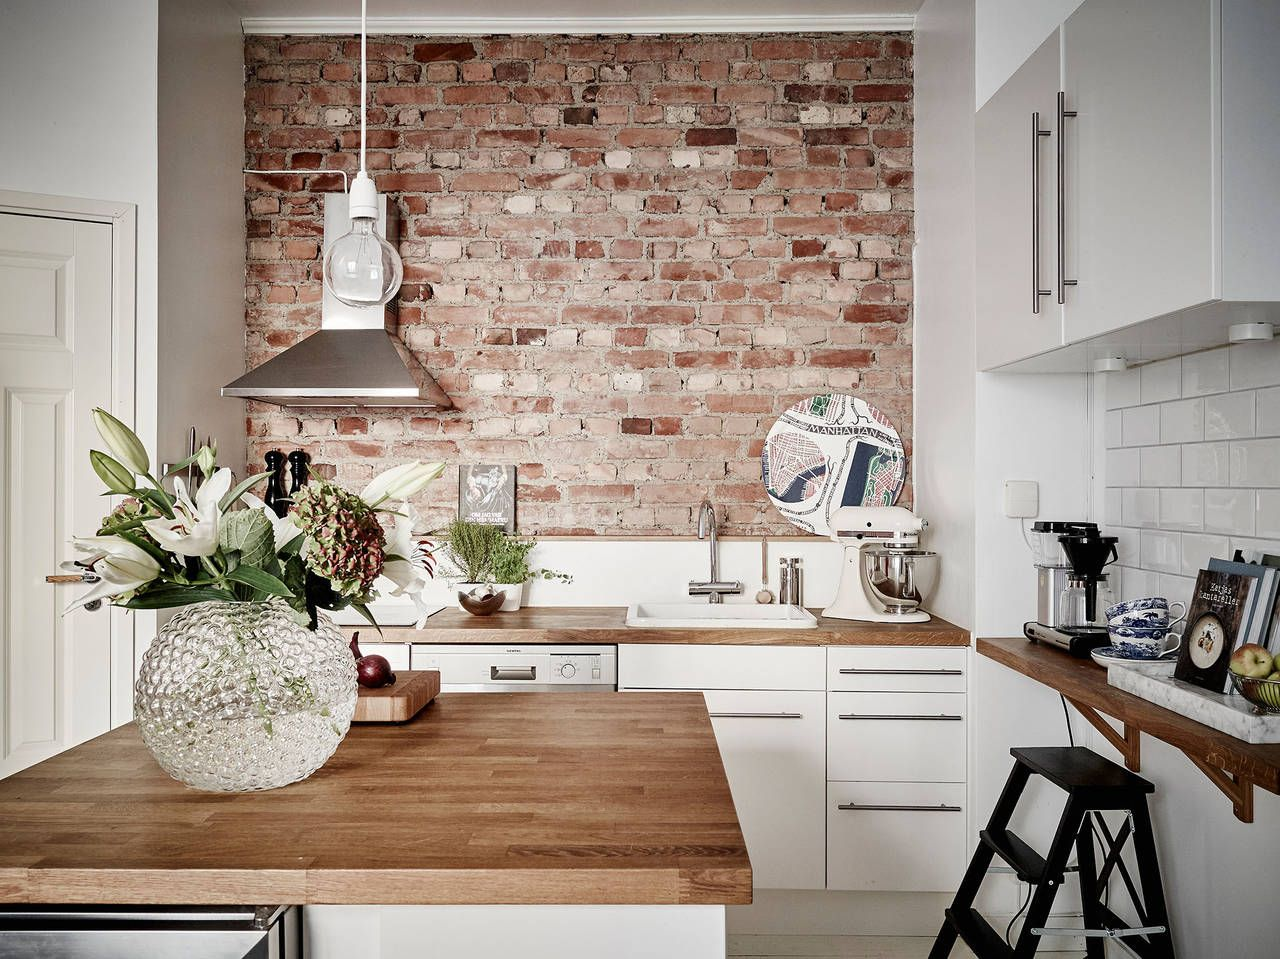 Renovierung von küchenideen even the small bit of exposed brick adds character doesnut need to